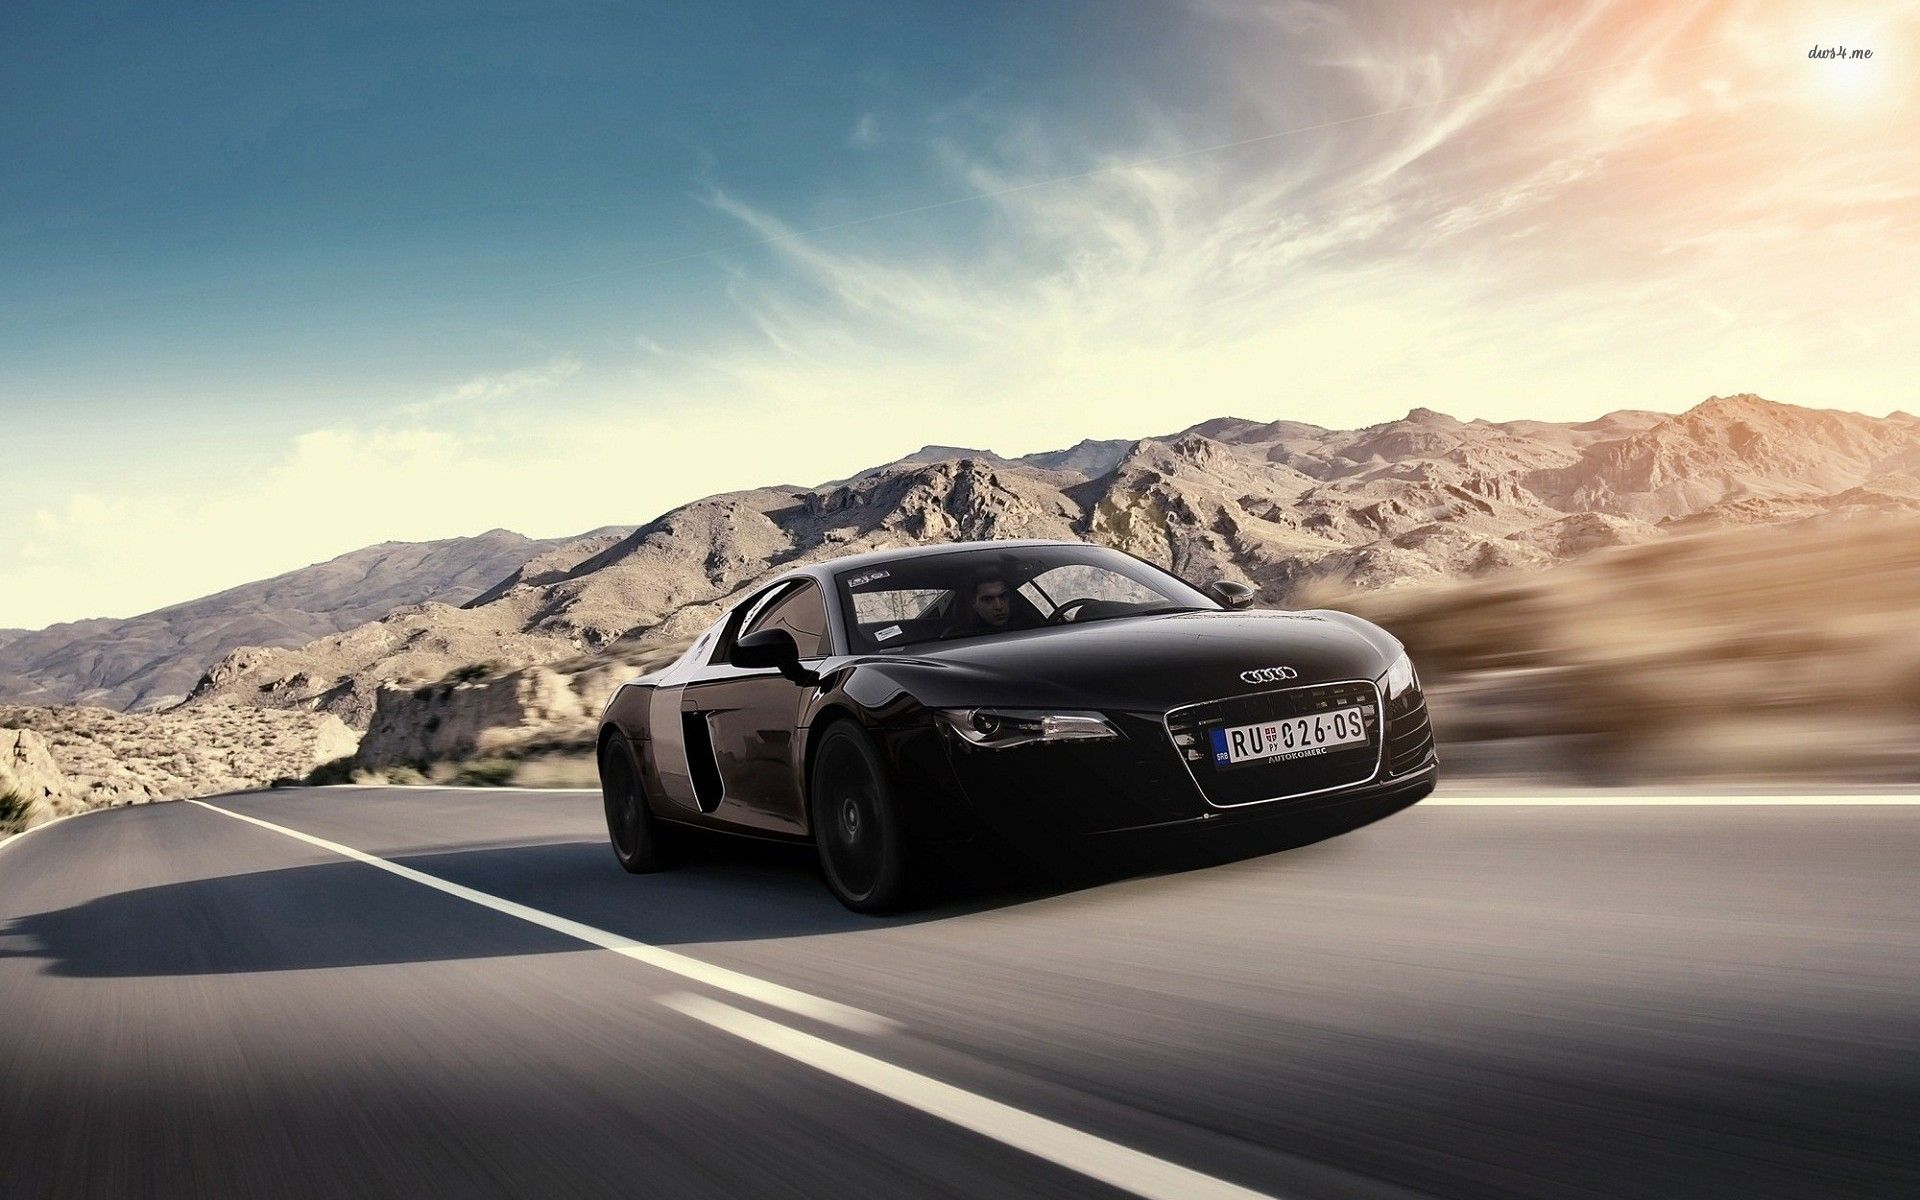 Audi R8 Desktop Wallpaper 25